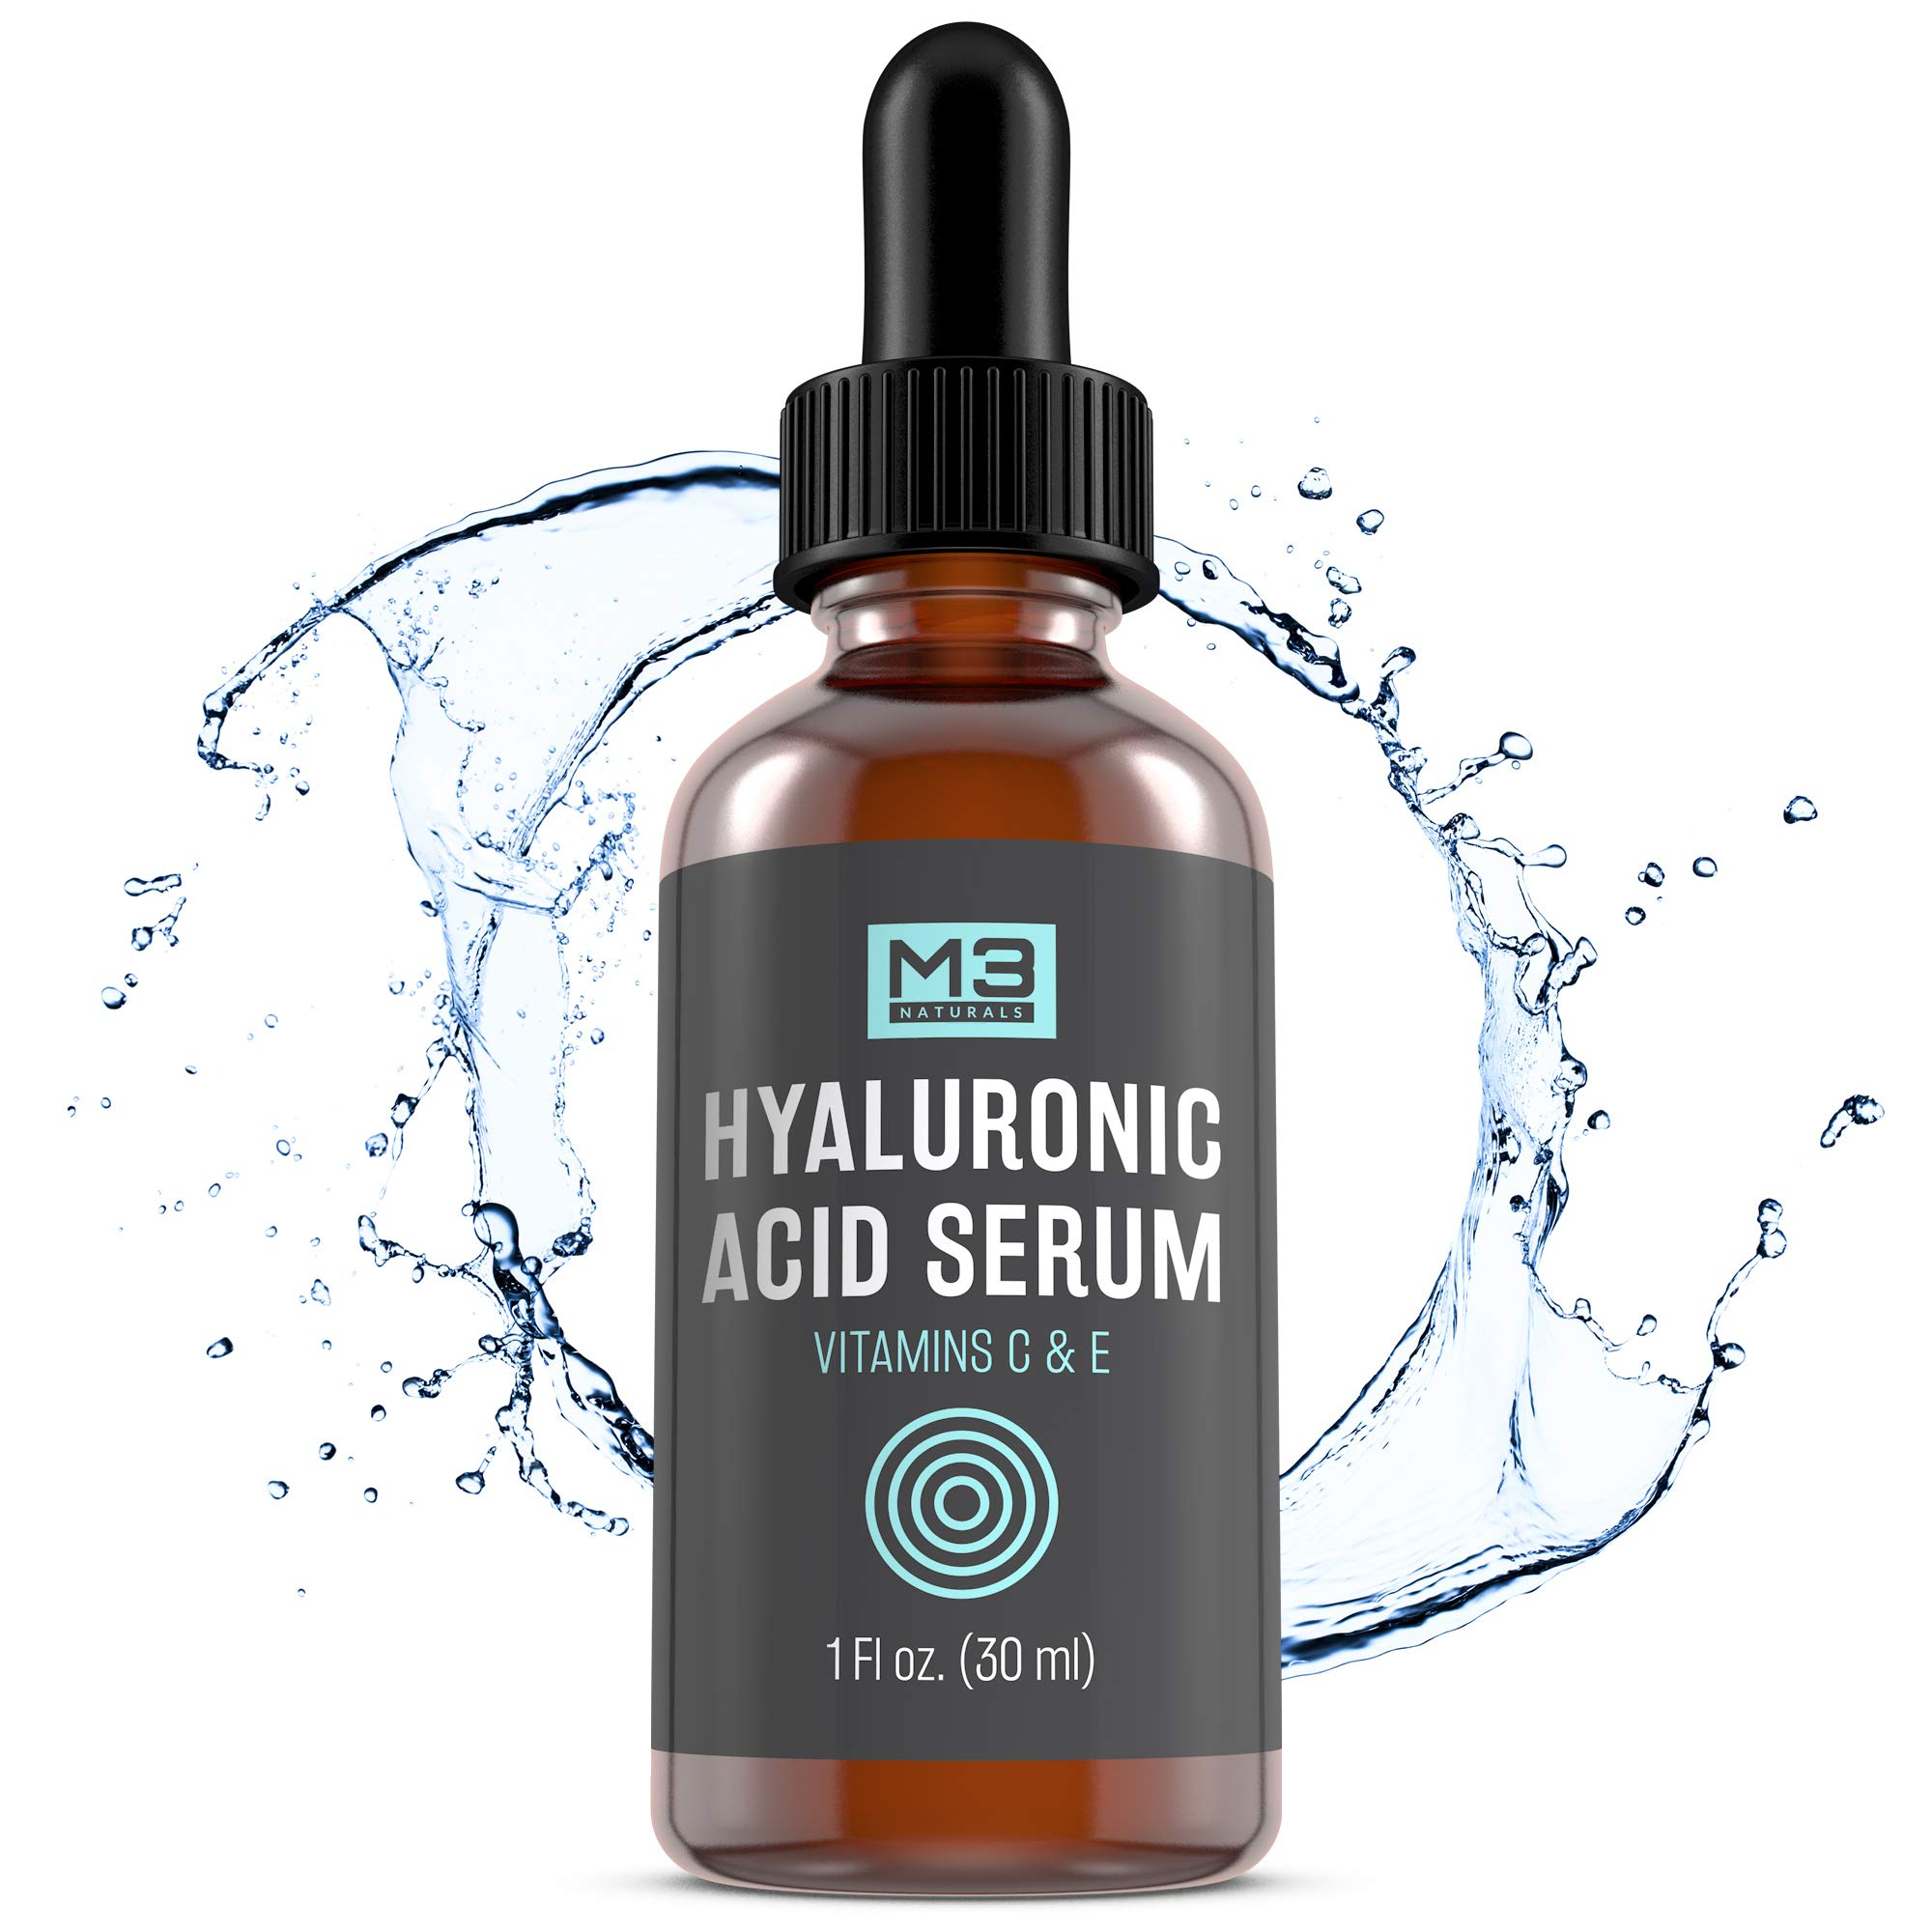 Premium Hyaluronic Acid Neck Firming Serum for Skin with Vitamin C & E for Face, Anti-Aging Topical Facial Serum, 1 fl oz